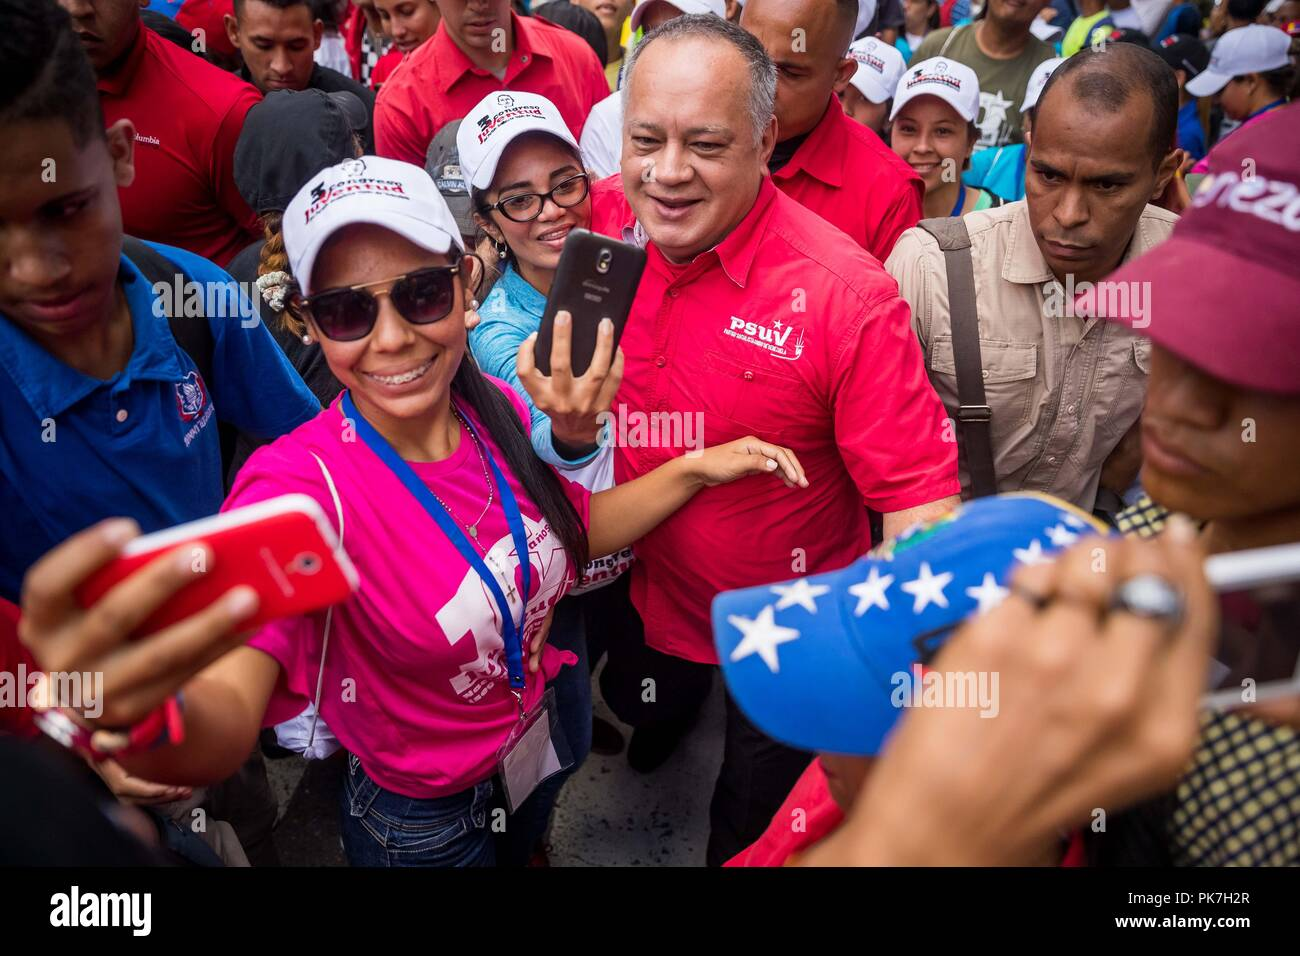 Caracas, Venezuela. 11th Sep, 2018. President of the National Constituent Assembly (ANC) Diosdado Cabello and supporters of Nicolas Maduro's Government demonstrate against the US 'imperialism' in Caracas, Venezuela, 11 September 2018. Thousands of sympathizers marched in support of the Venezuelan President, who advances an economic package rejected by experts and the opposition, as well as 'against US imperialism', which they accused of threatening the stability of the oil country. Credit: Miguel Gutierrez/EFE/Alamy Live News - Stock Image